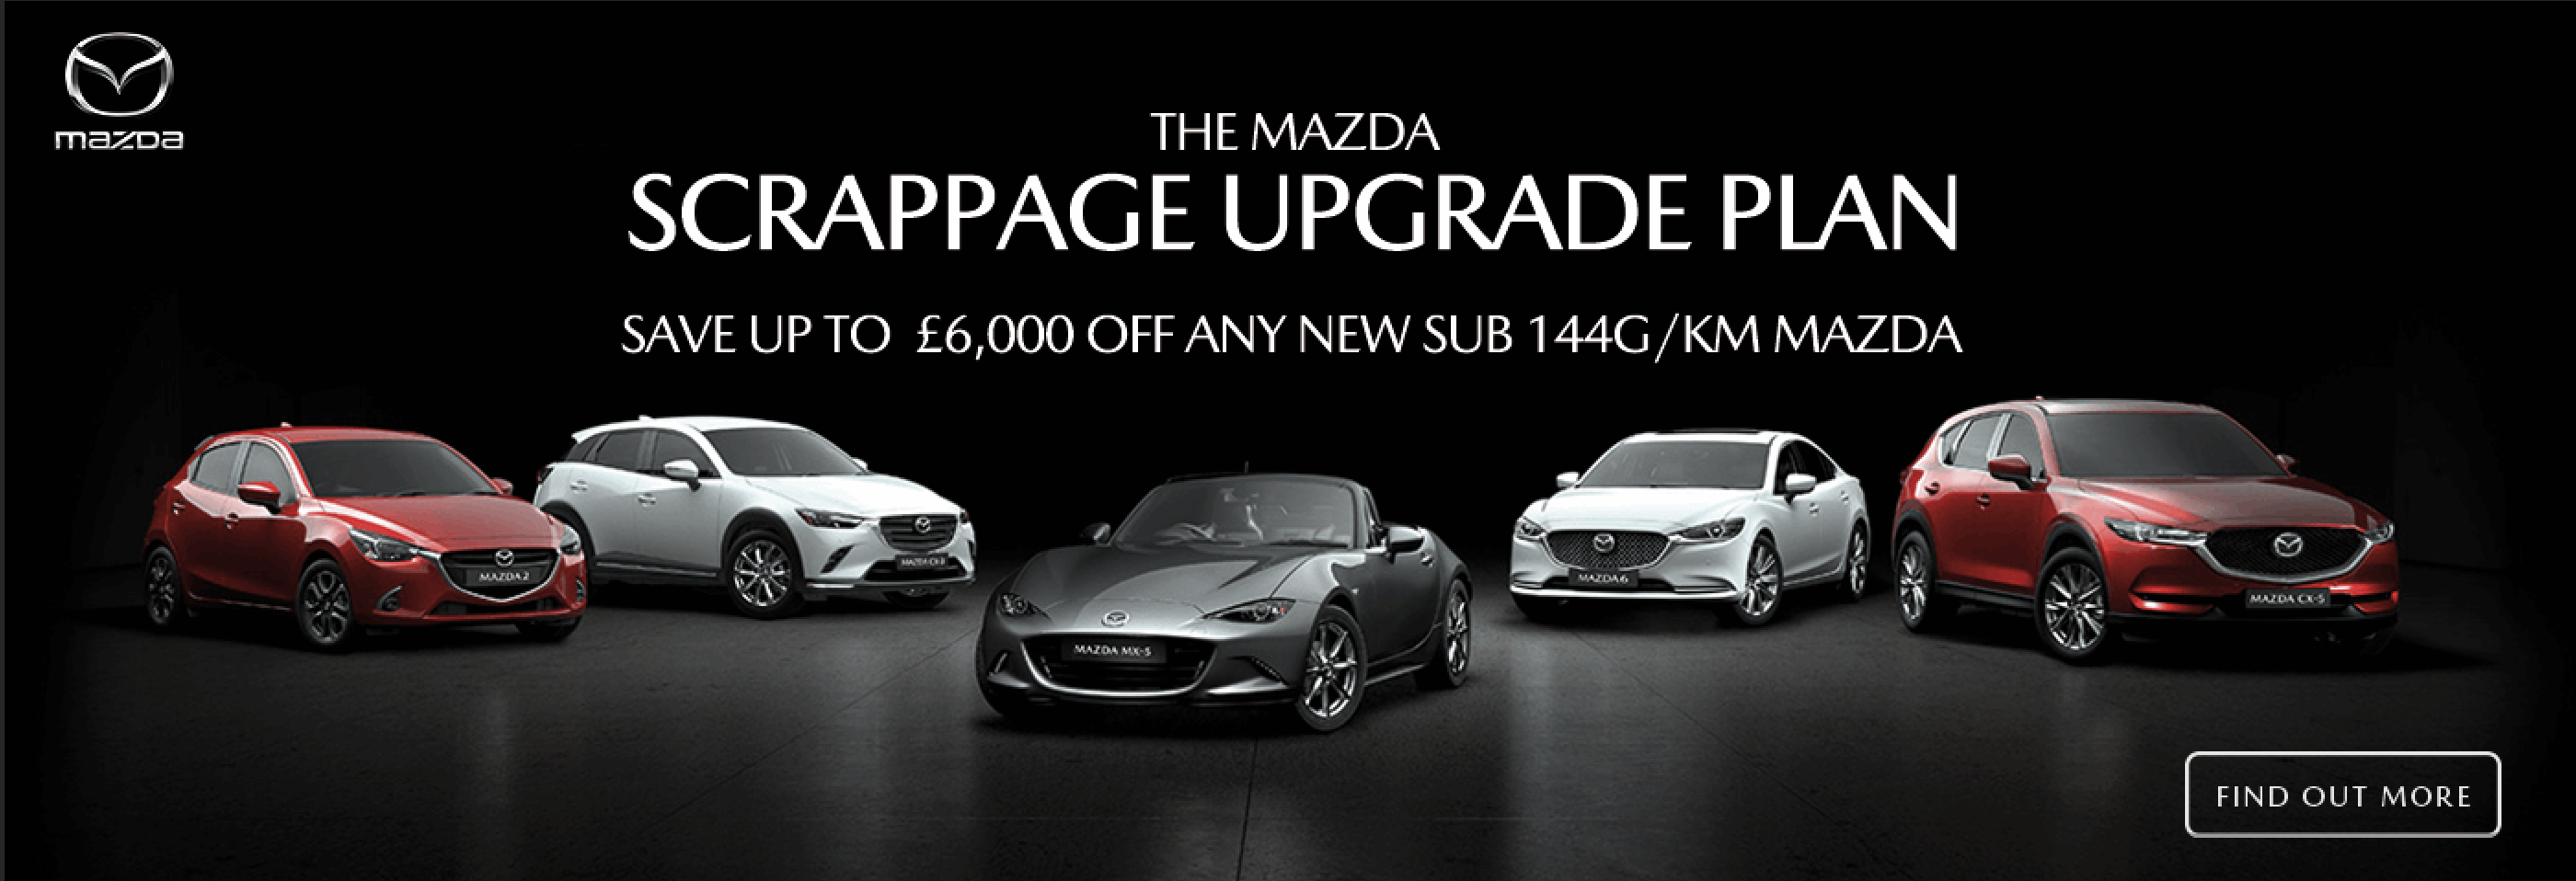 mazda scrappage upgrade plan